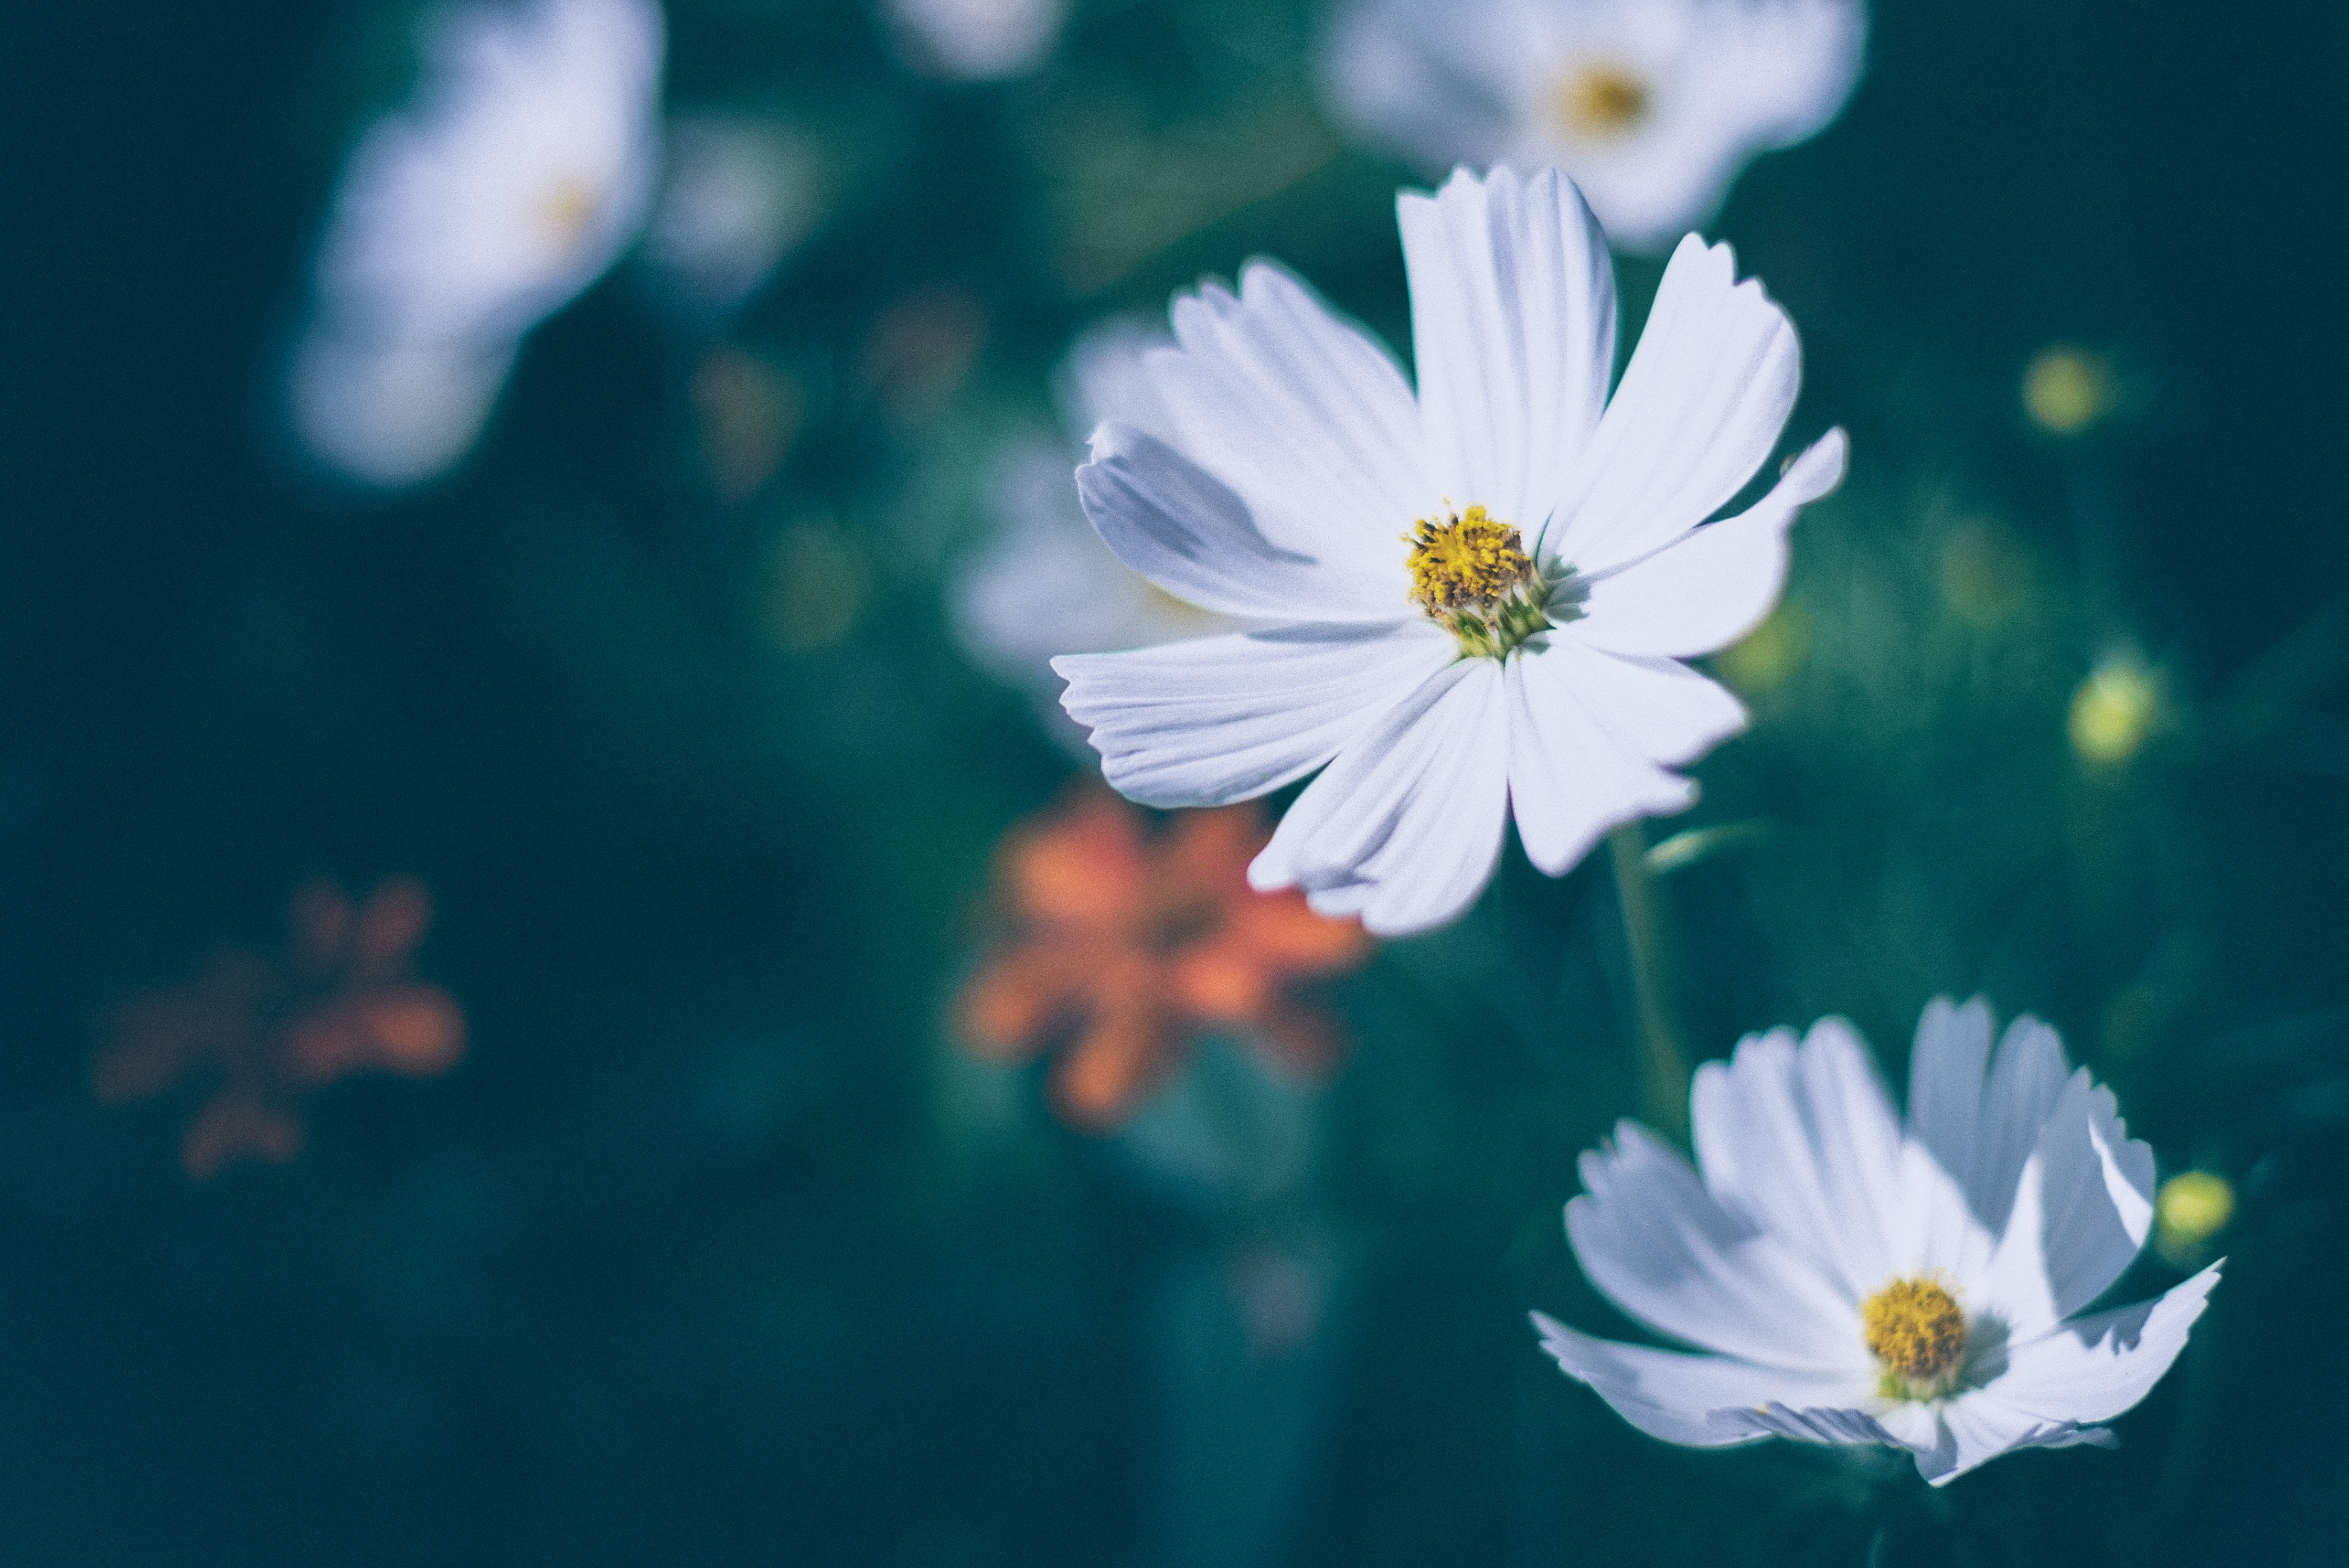 White Cosmos flowers in bloom at daytime, moon HD wallpaper ...